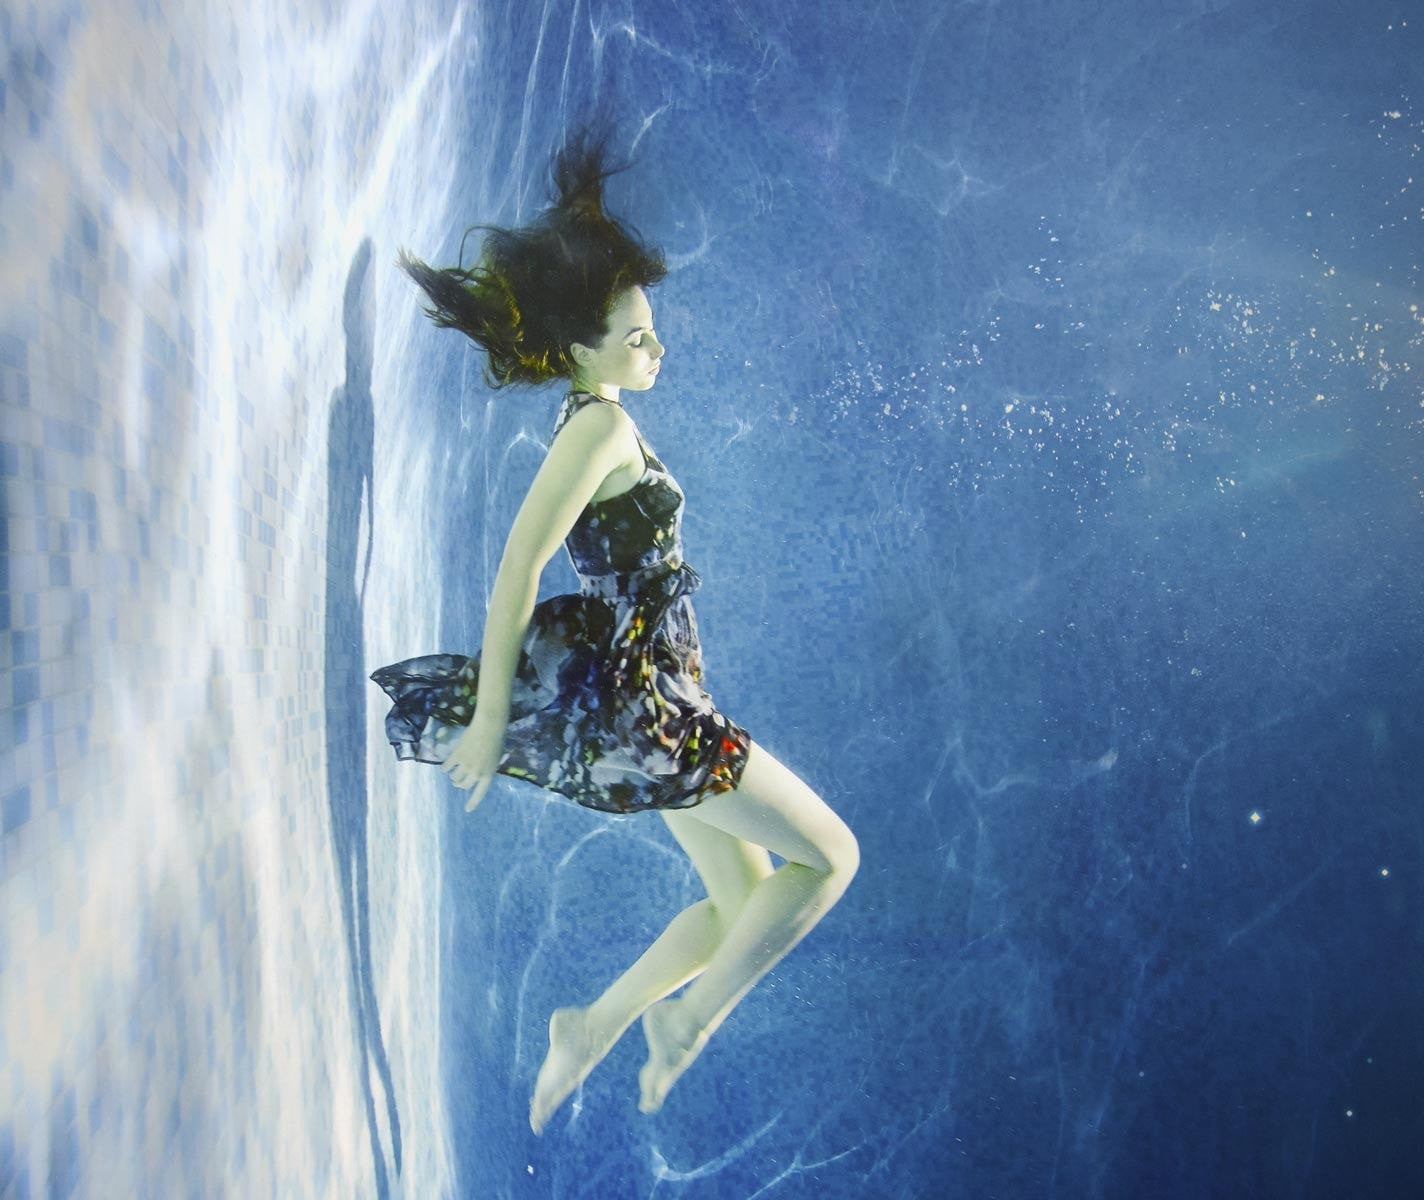 Distill the Moment Zena Holloway